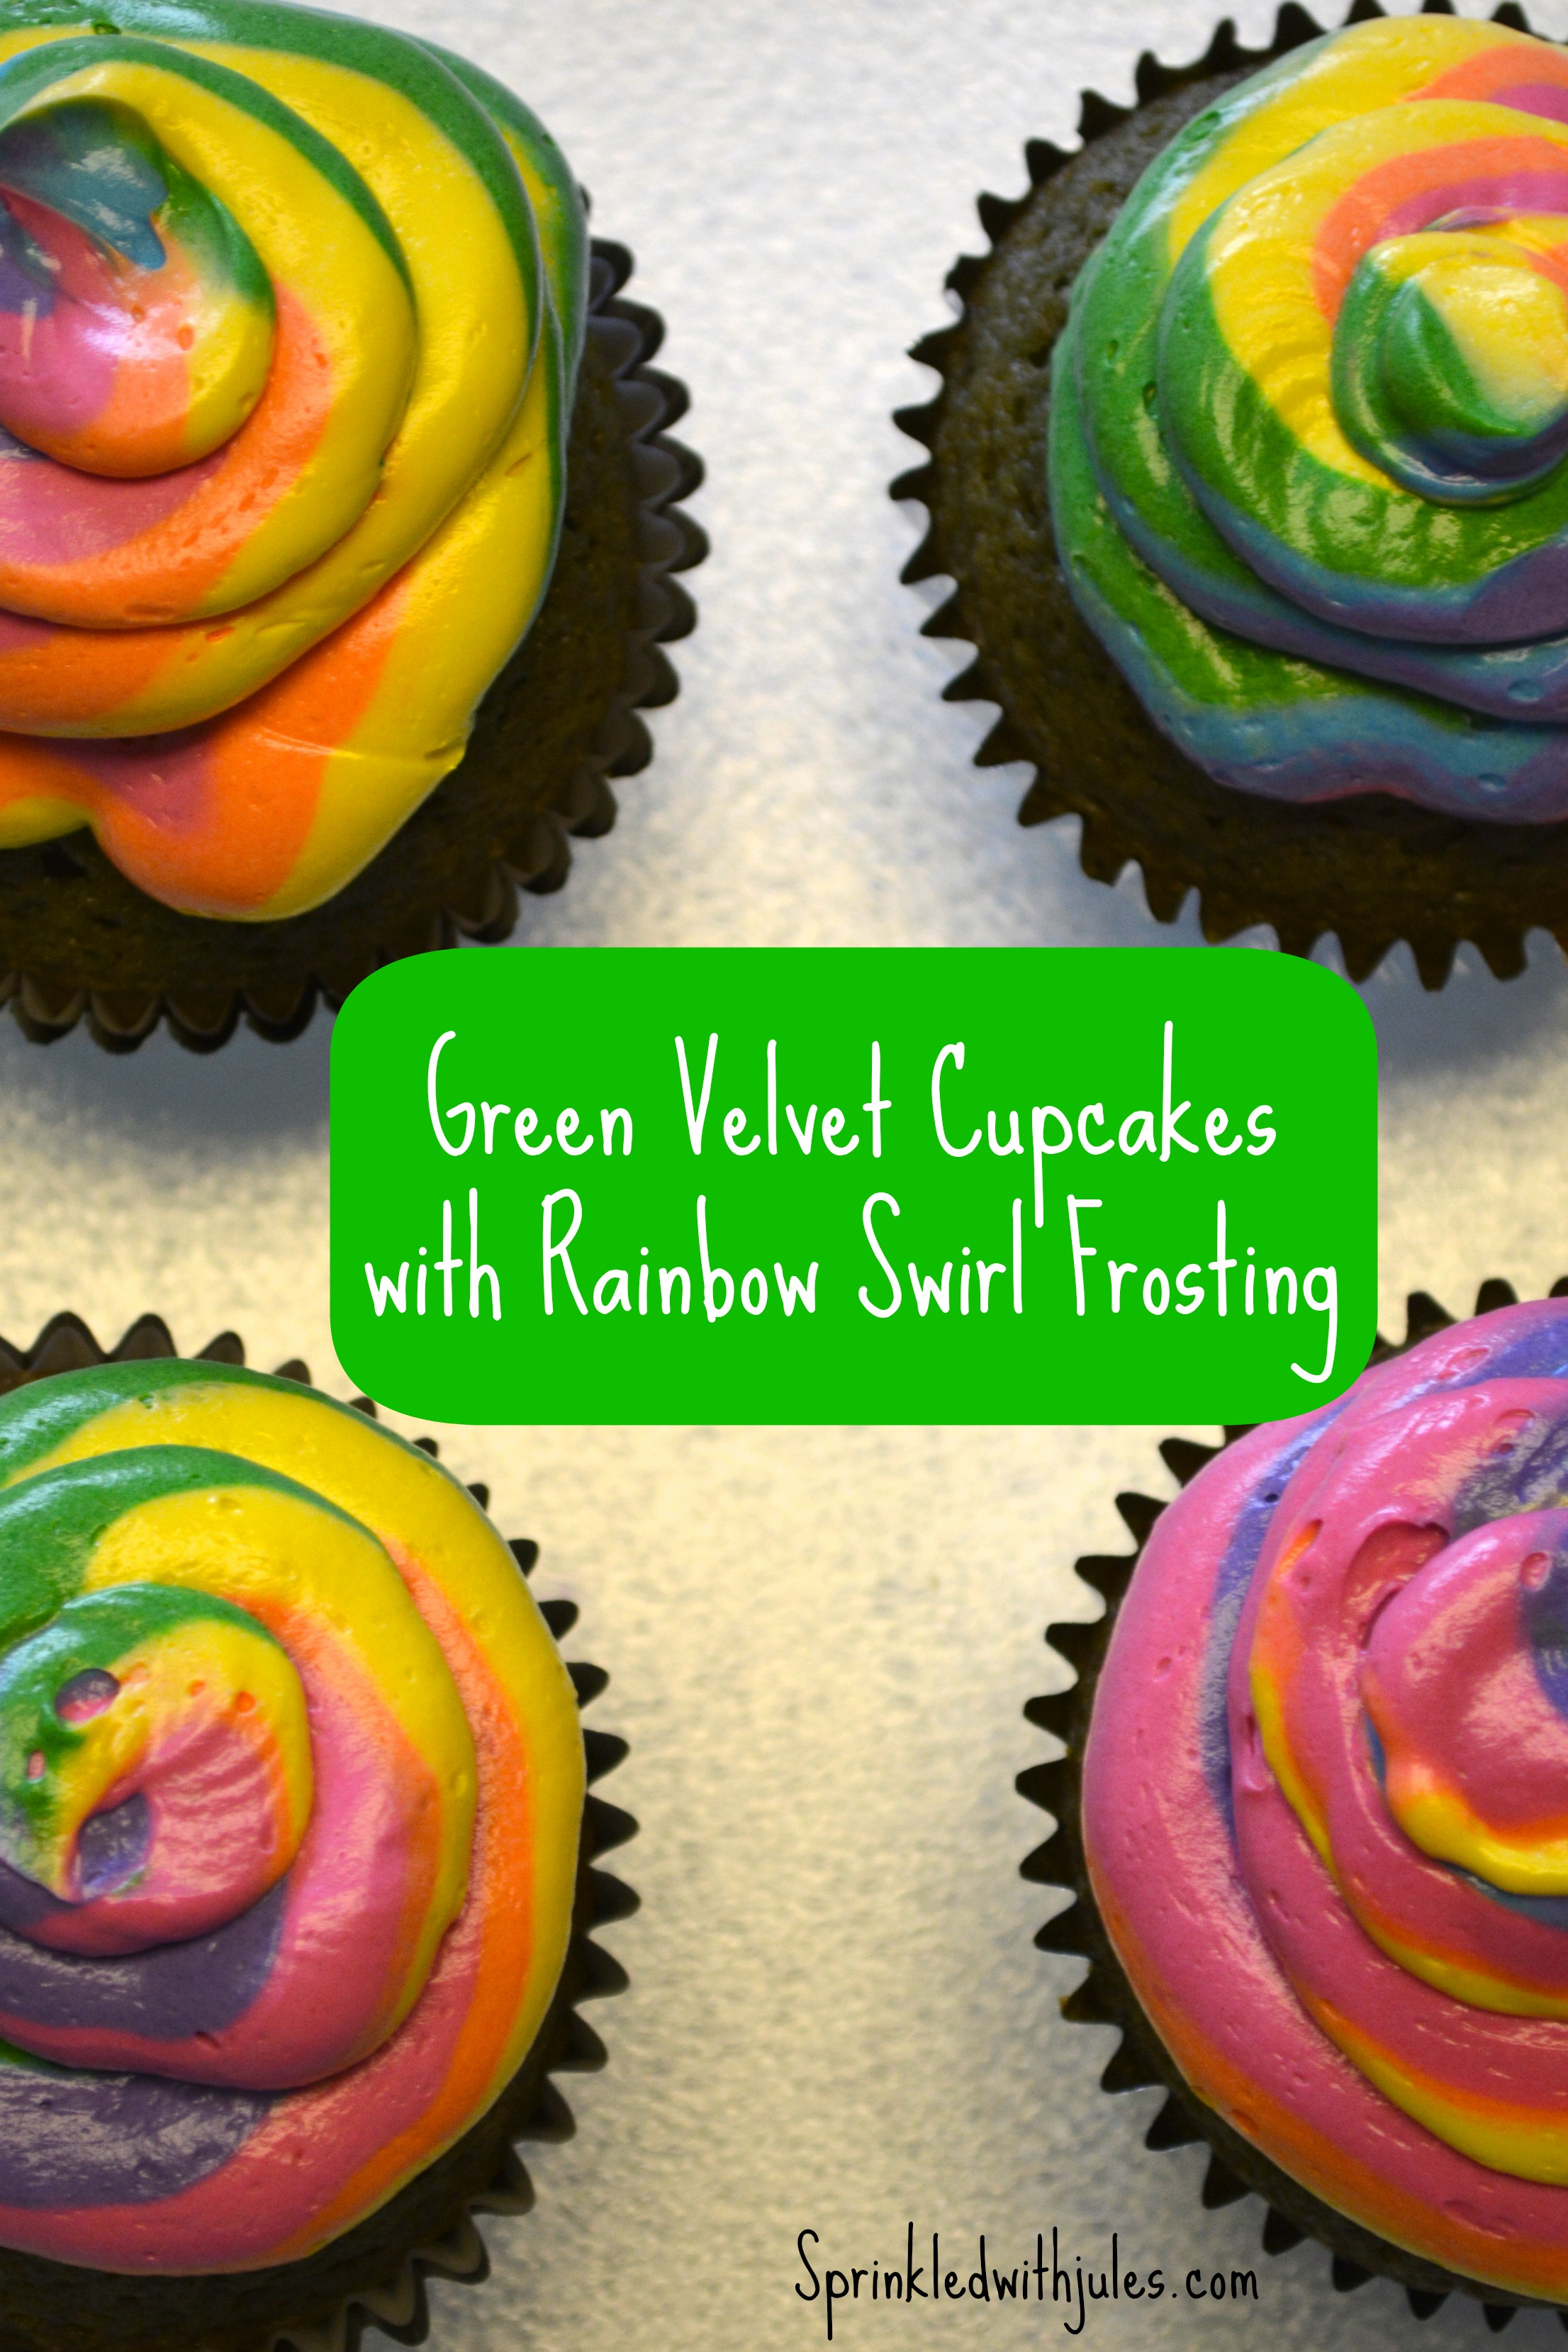 Green Velvet Cupcakes with Rainbow Swirled Frosting